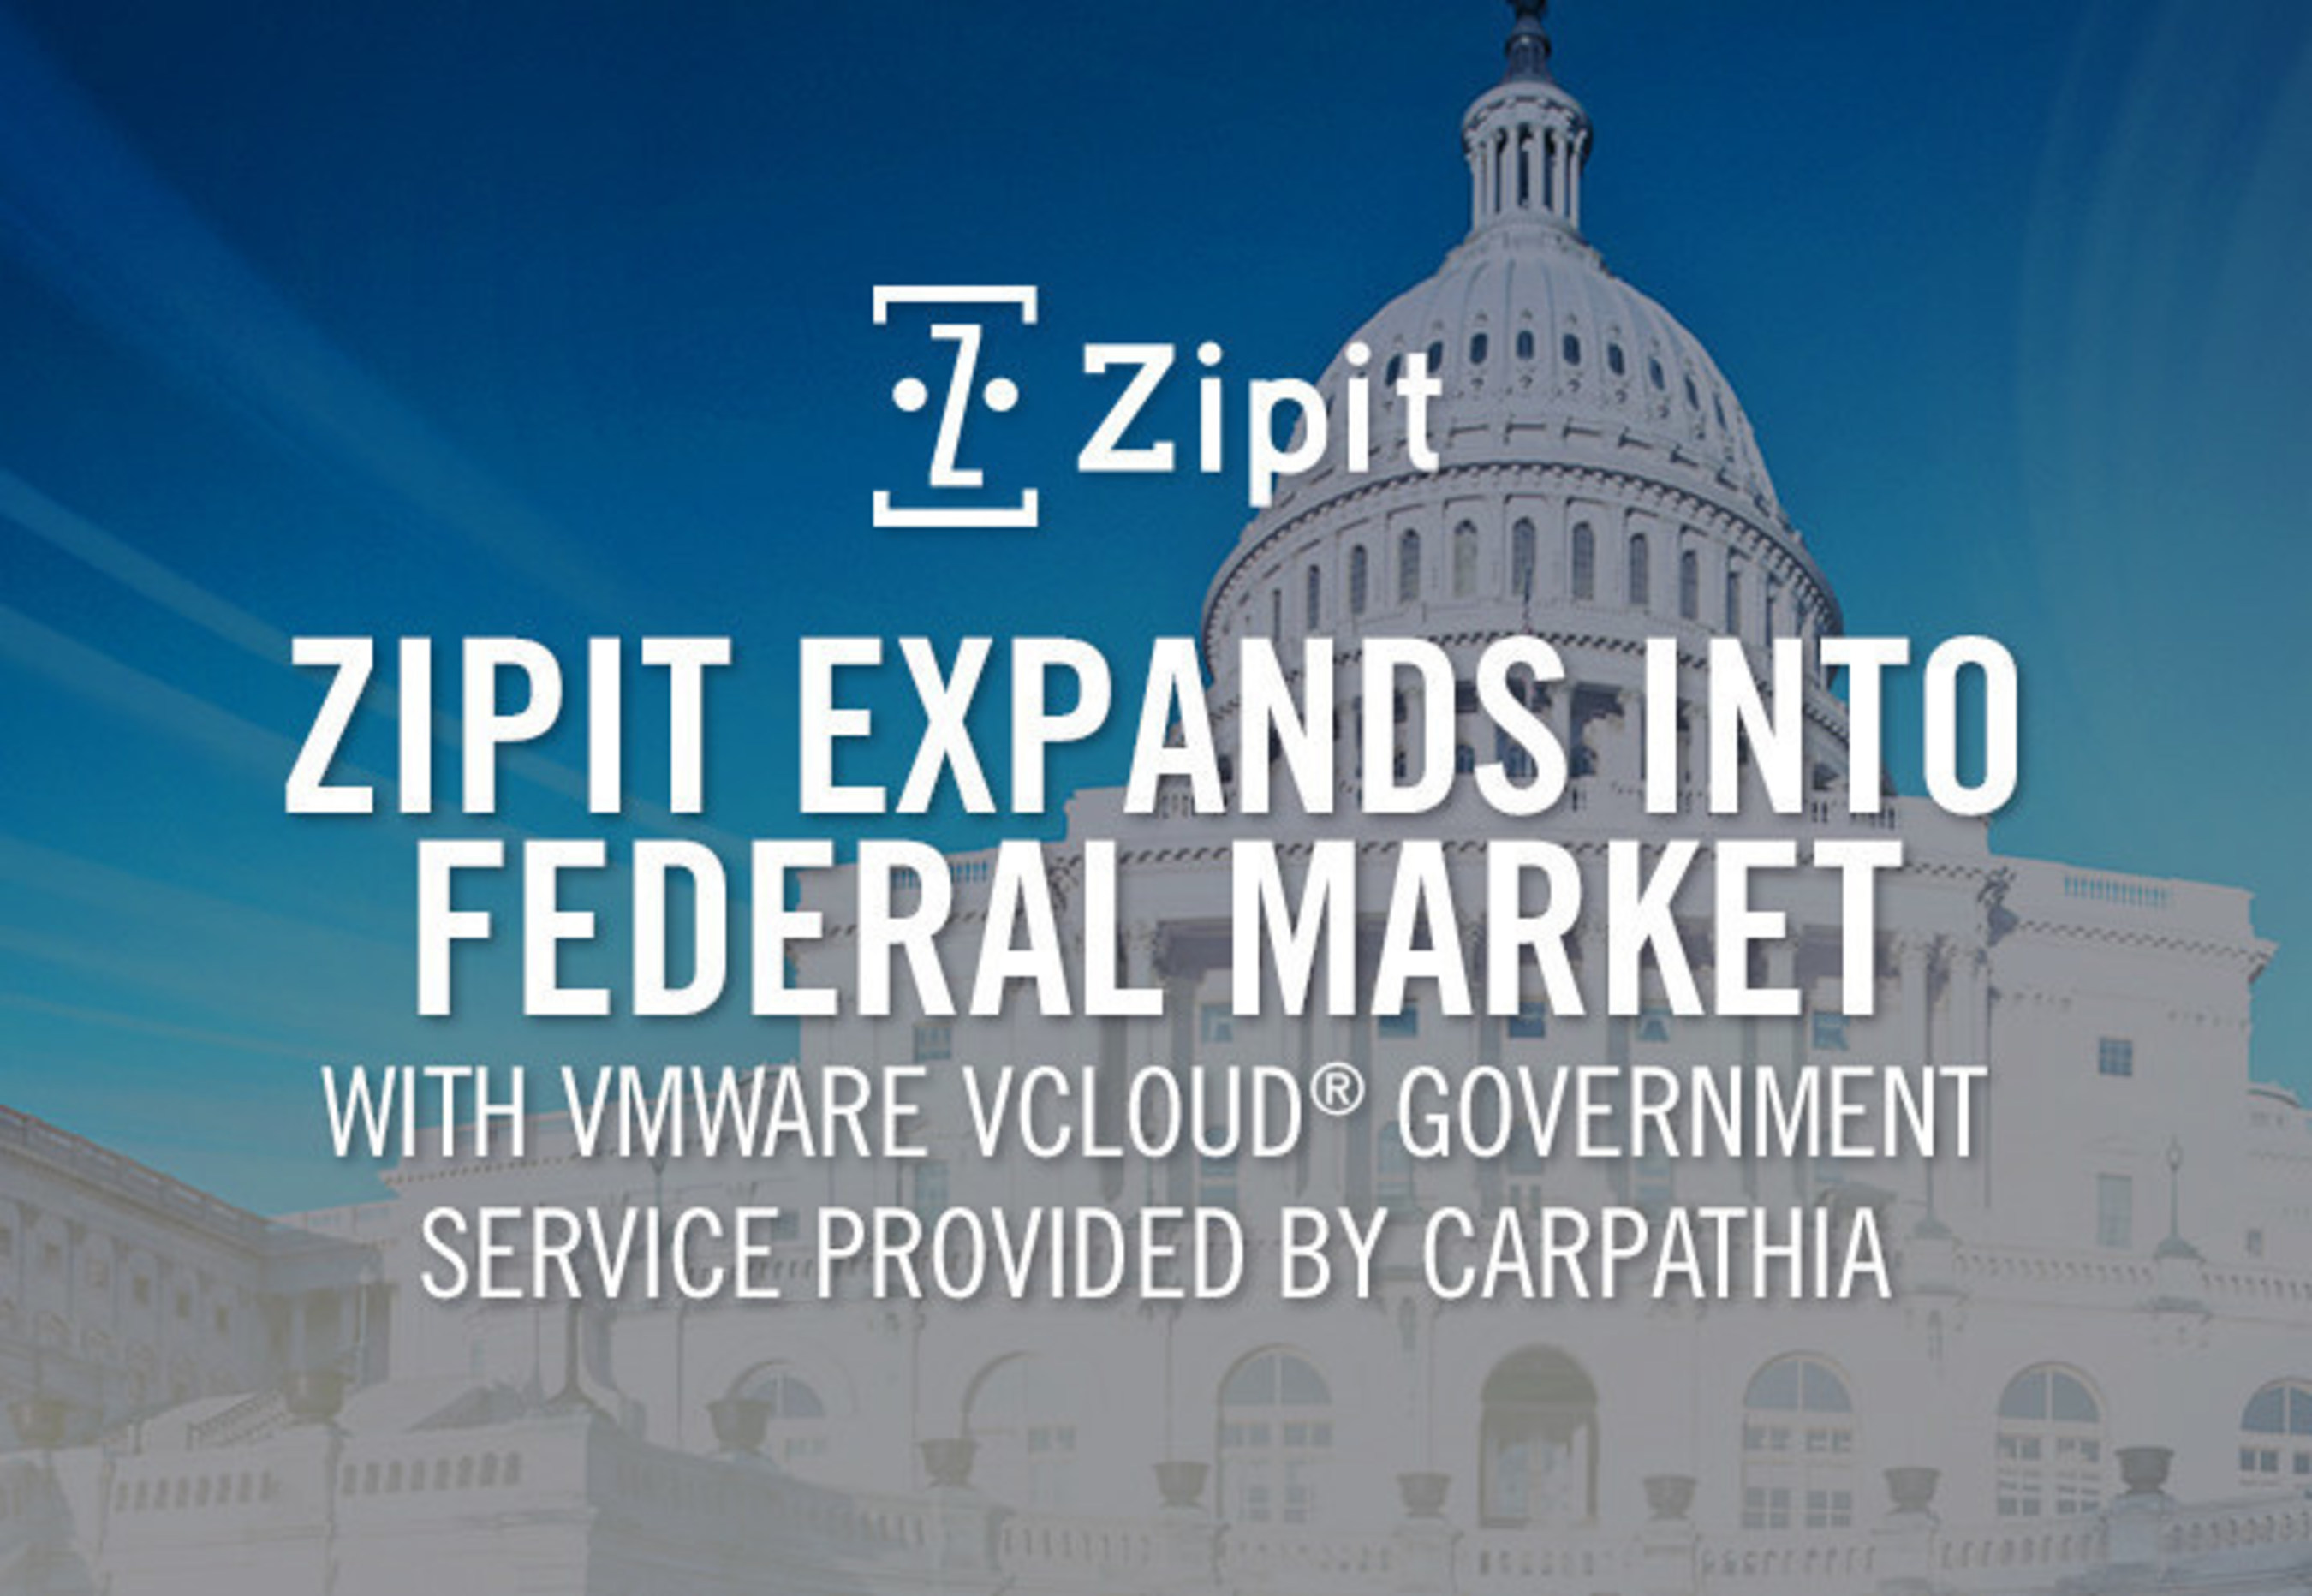 Zipit Wireless Chooses VMware vCloud' Government Service provided by Carpathia to Expand into Federal Market